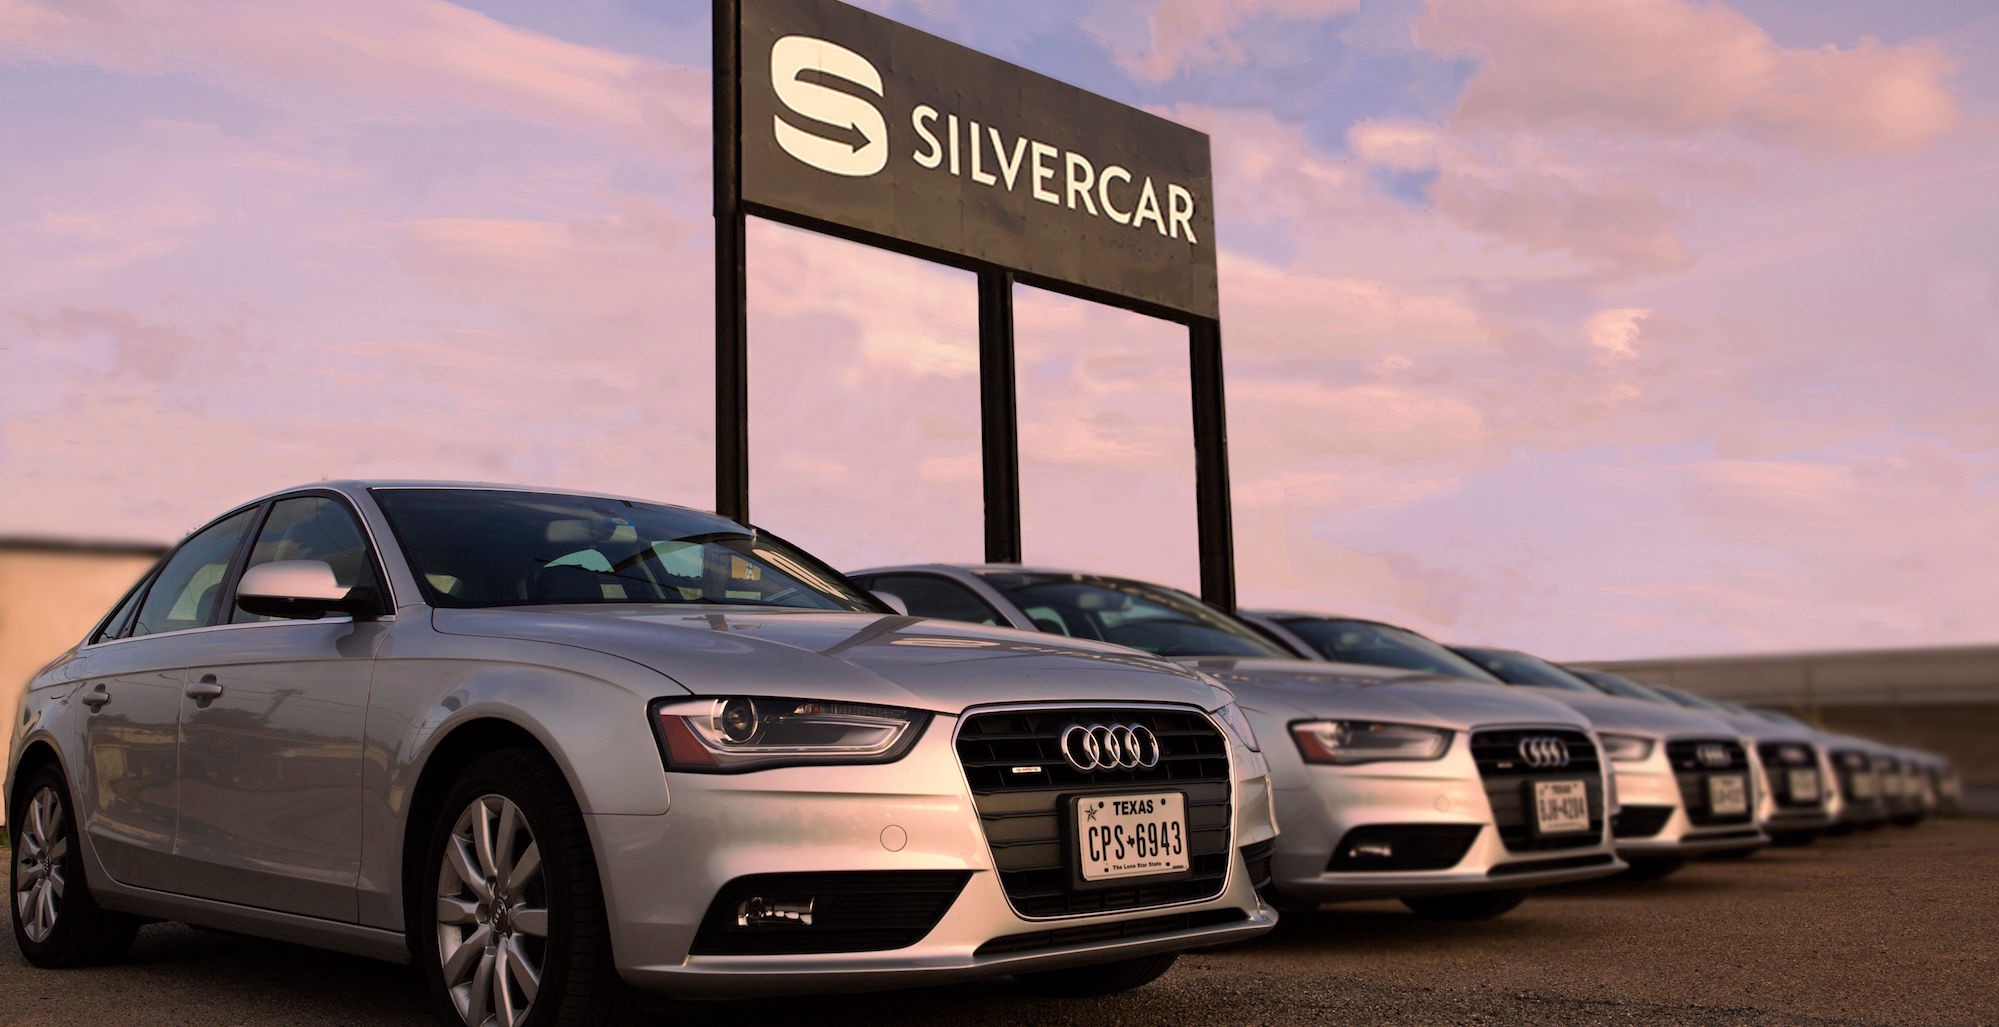 To Rent Or Not To Rent A SilverCar Review Chris Corriveau Medium - Audi rental cars